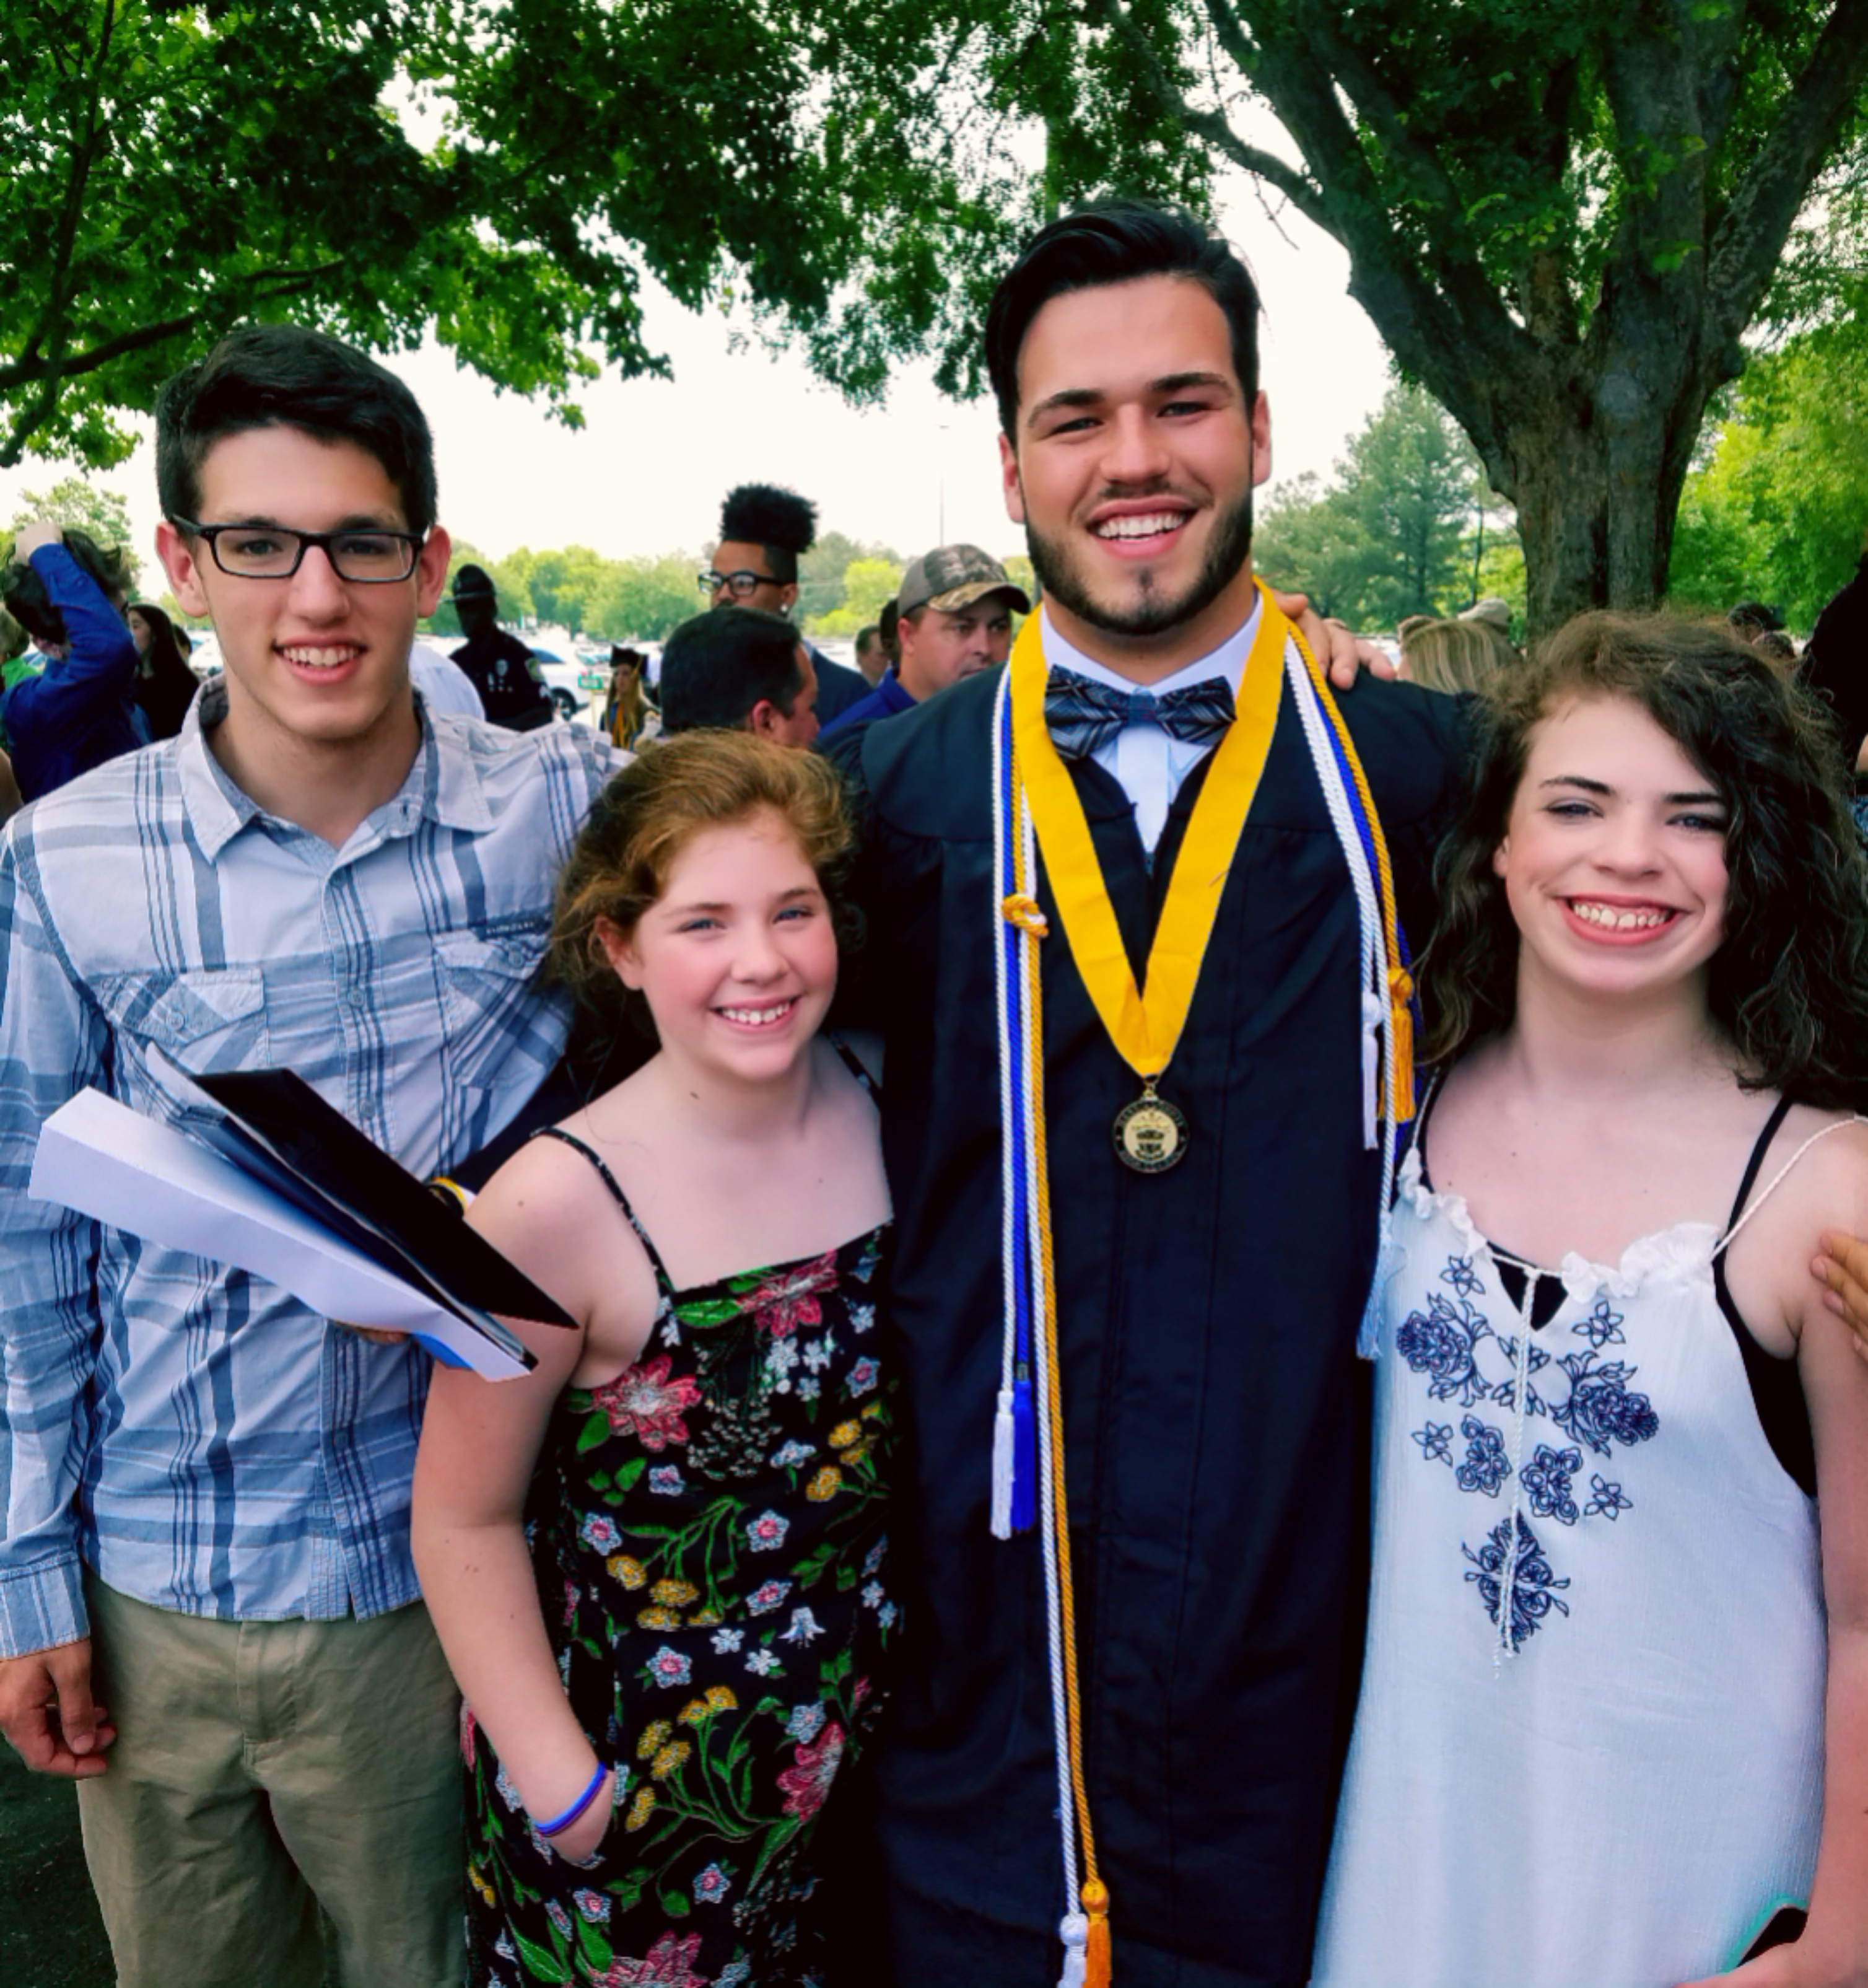 A photo of the writer's four children, one wearing a graduation robe.